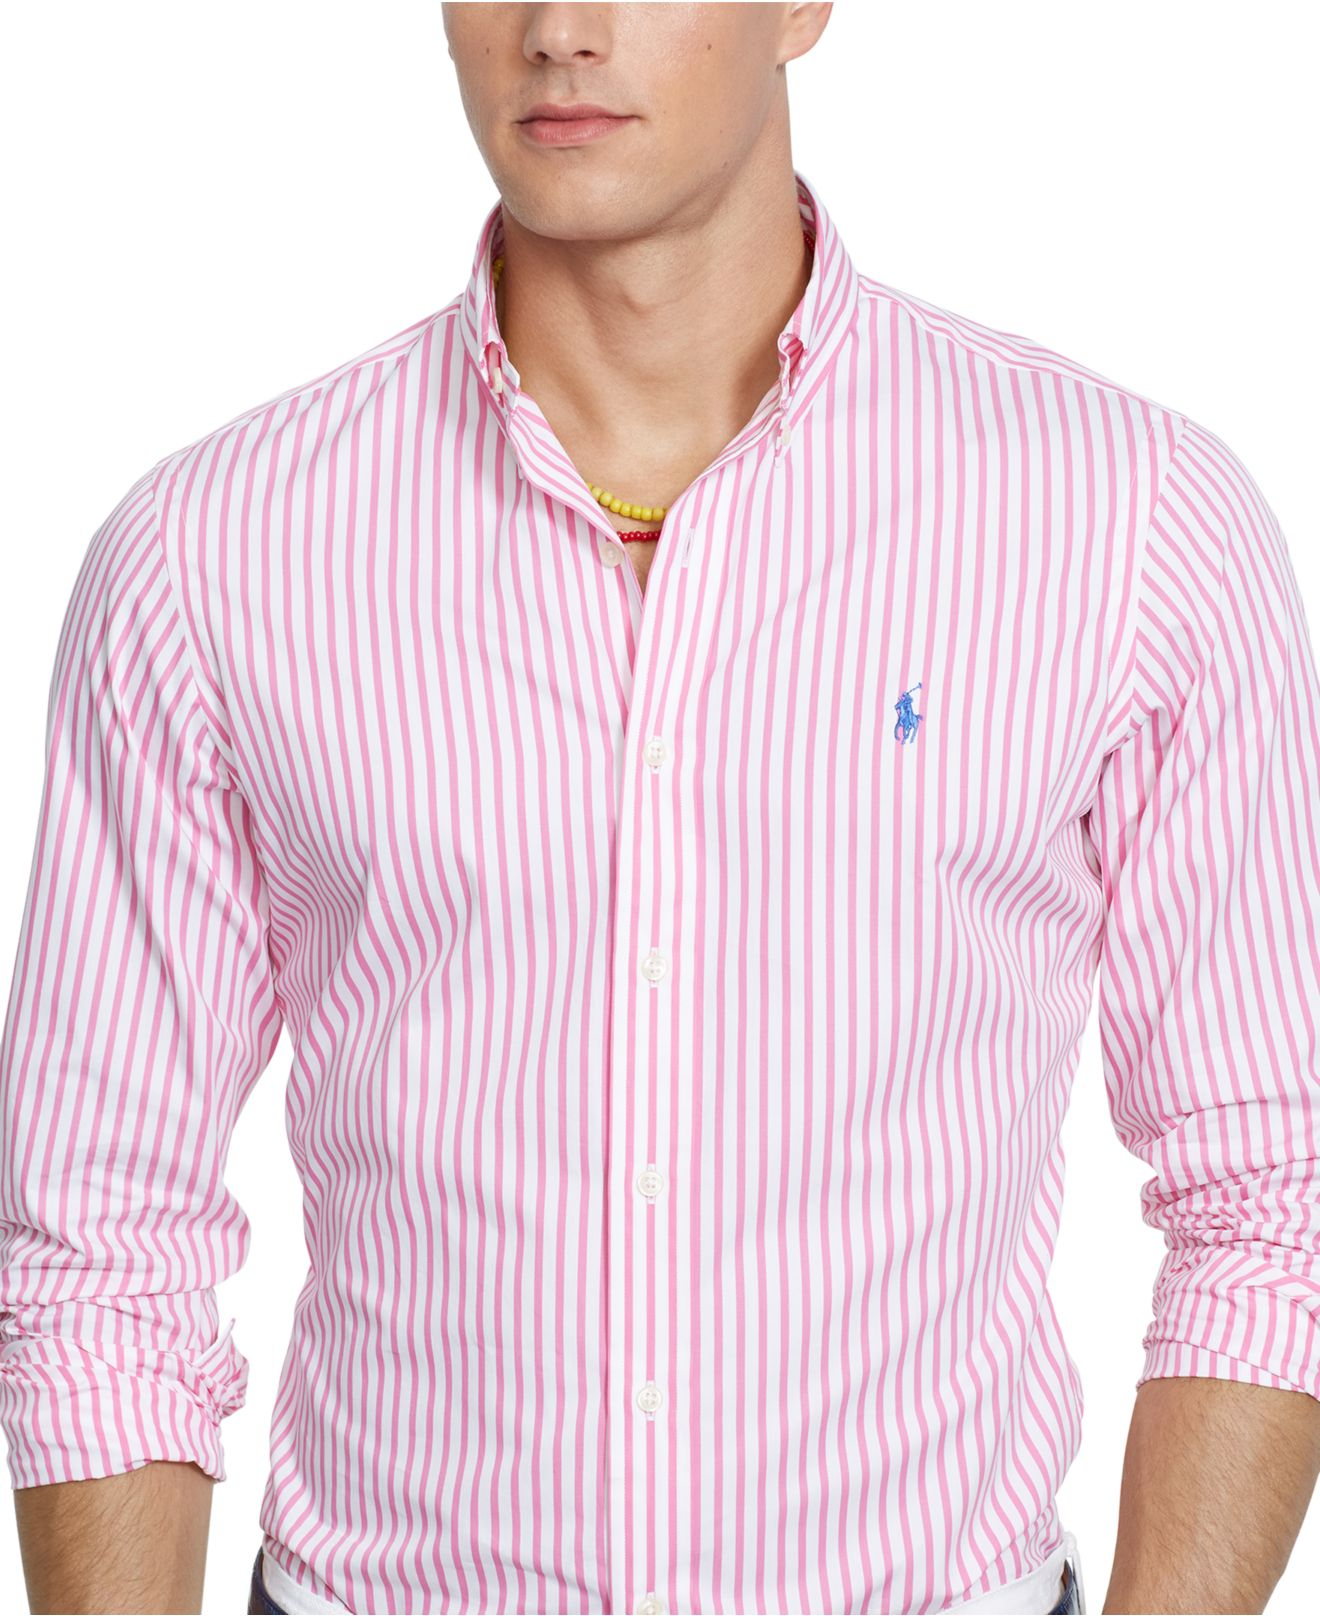 1ca2bc239d021 Lyst - Polo Ralph Lauren Men s Long Sleeve Striped Poplin Shirt in ...